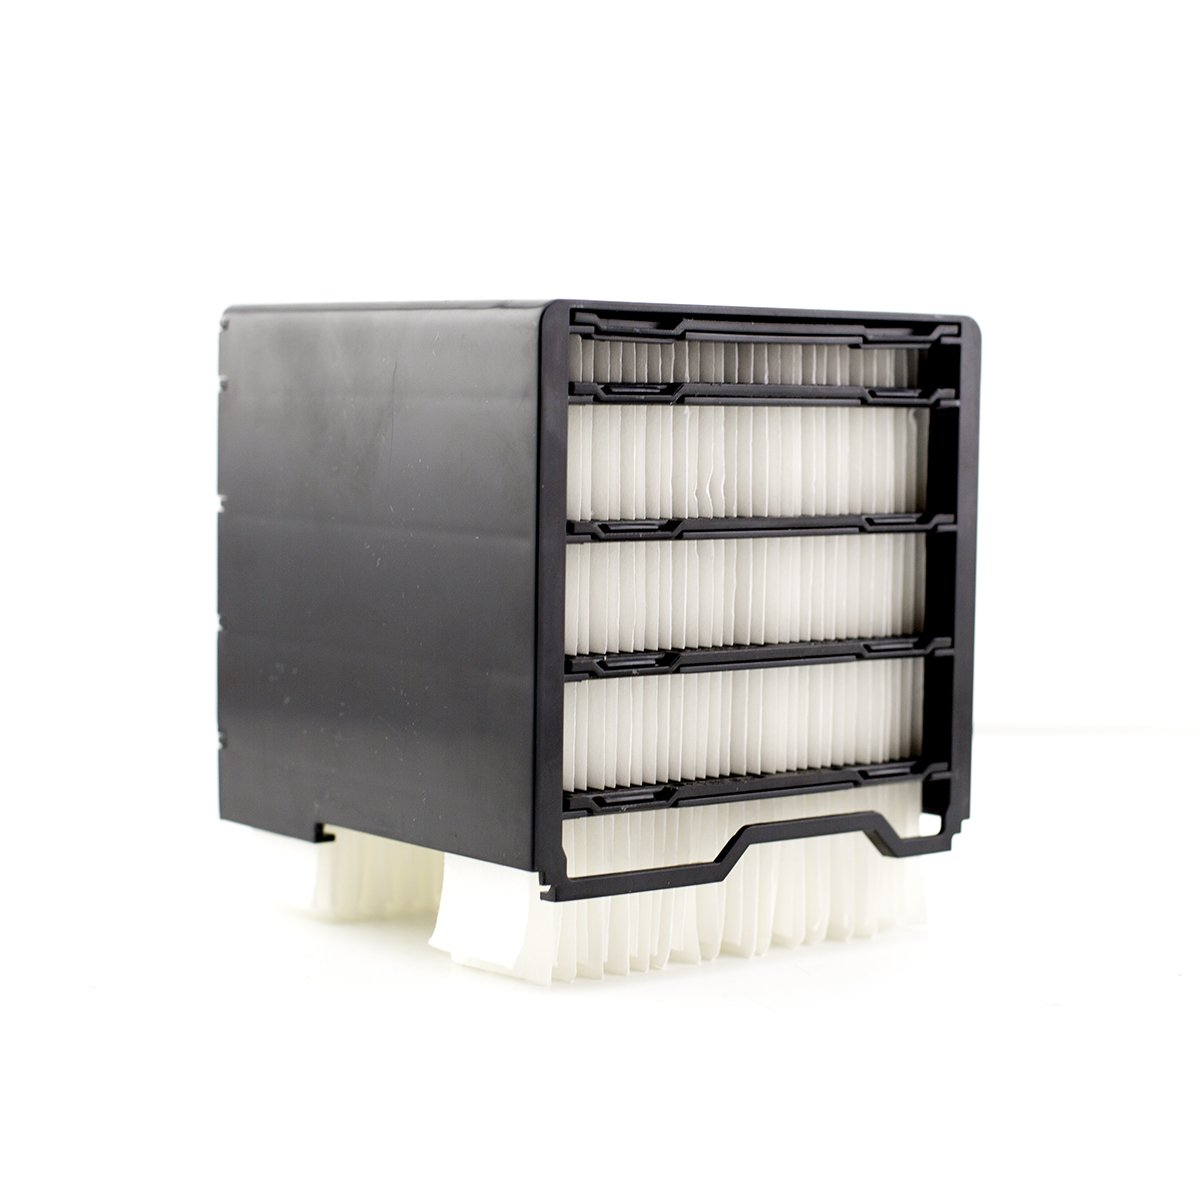 JML Arctic Air Spare Filter - Replacement filter for your Arctic Air